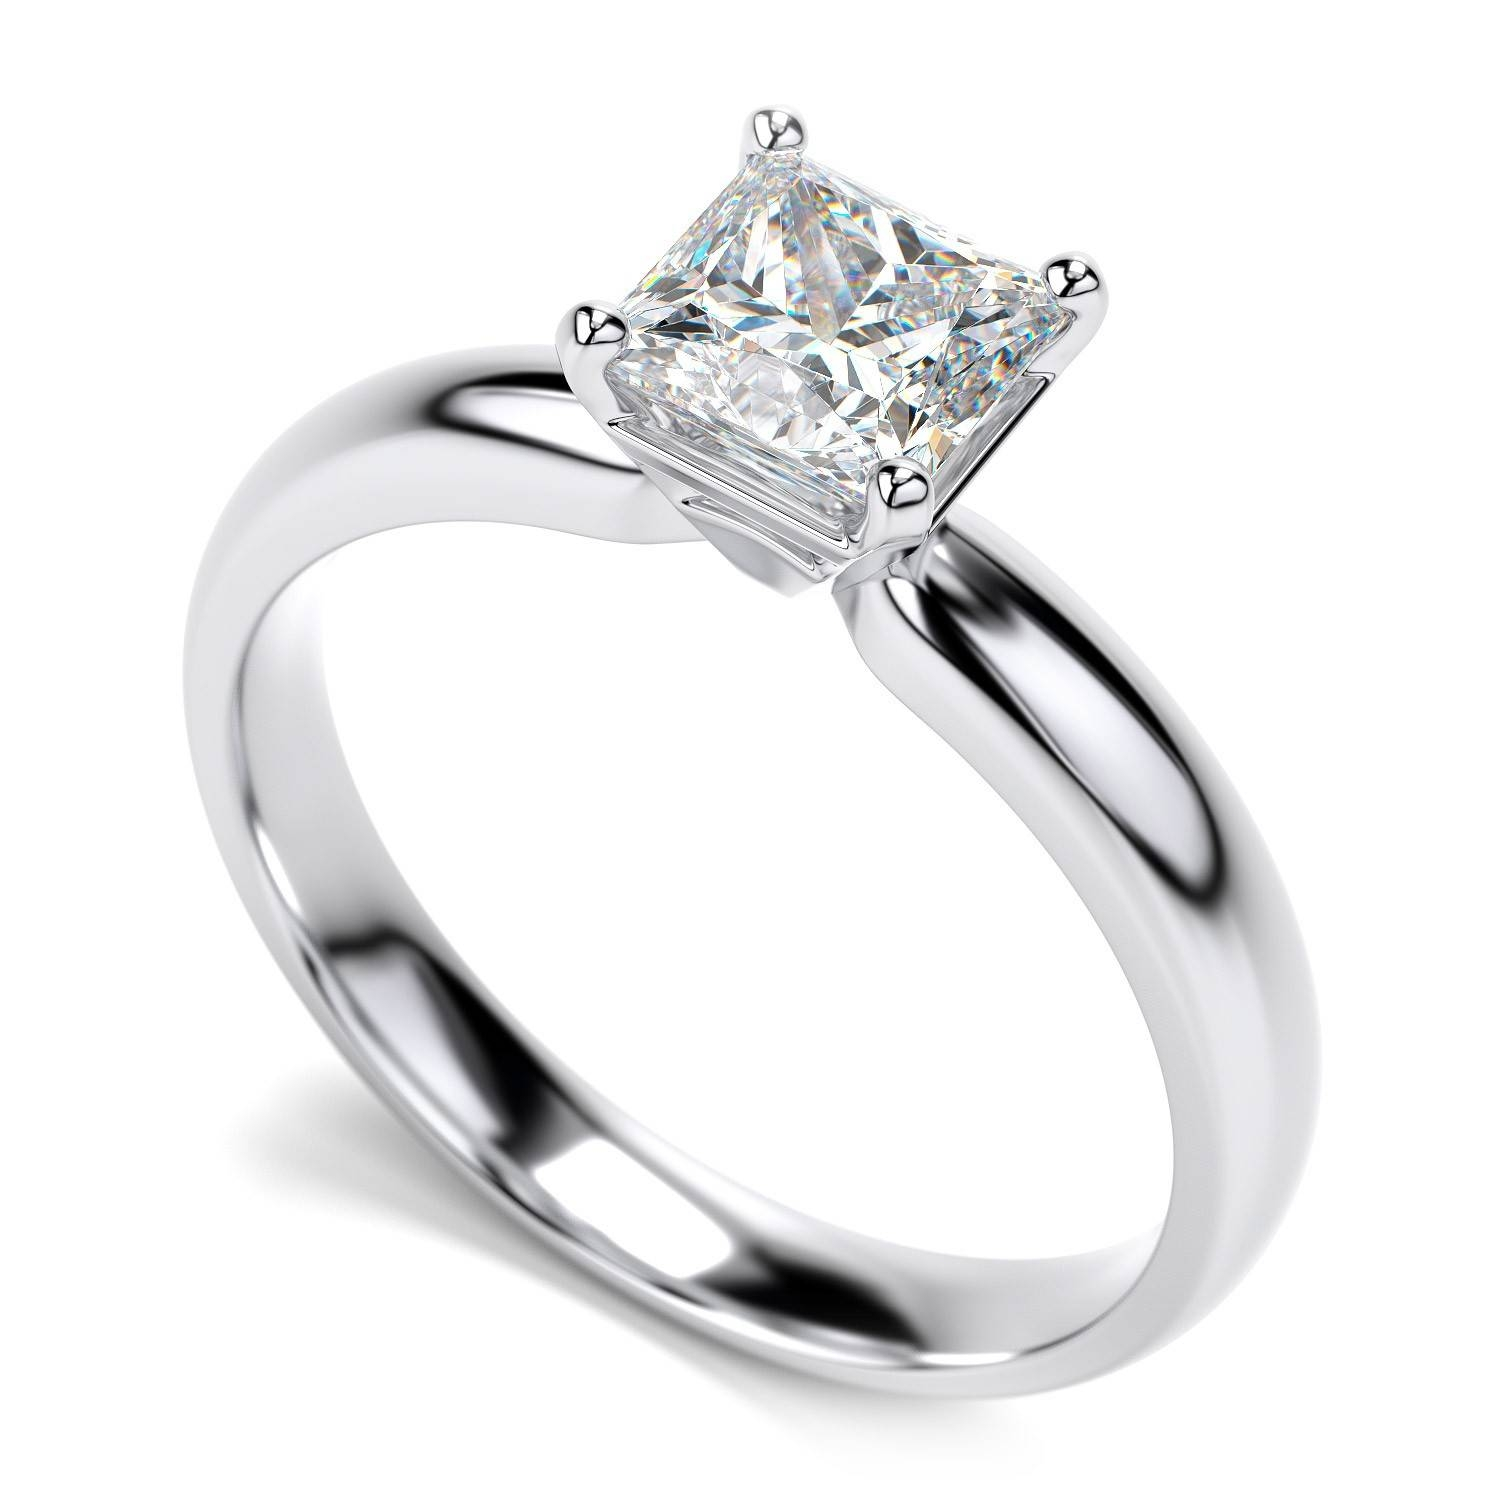 Tips And The 4 Cs To Choose Your Diamond Engagement Rings Within Princess Shaped Engagement Rings (View 1 of 15)